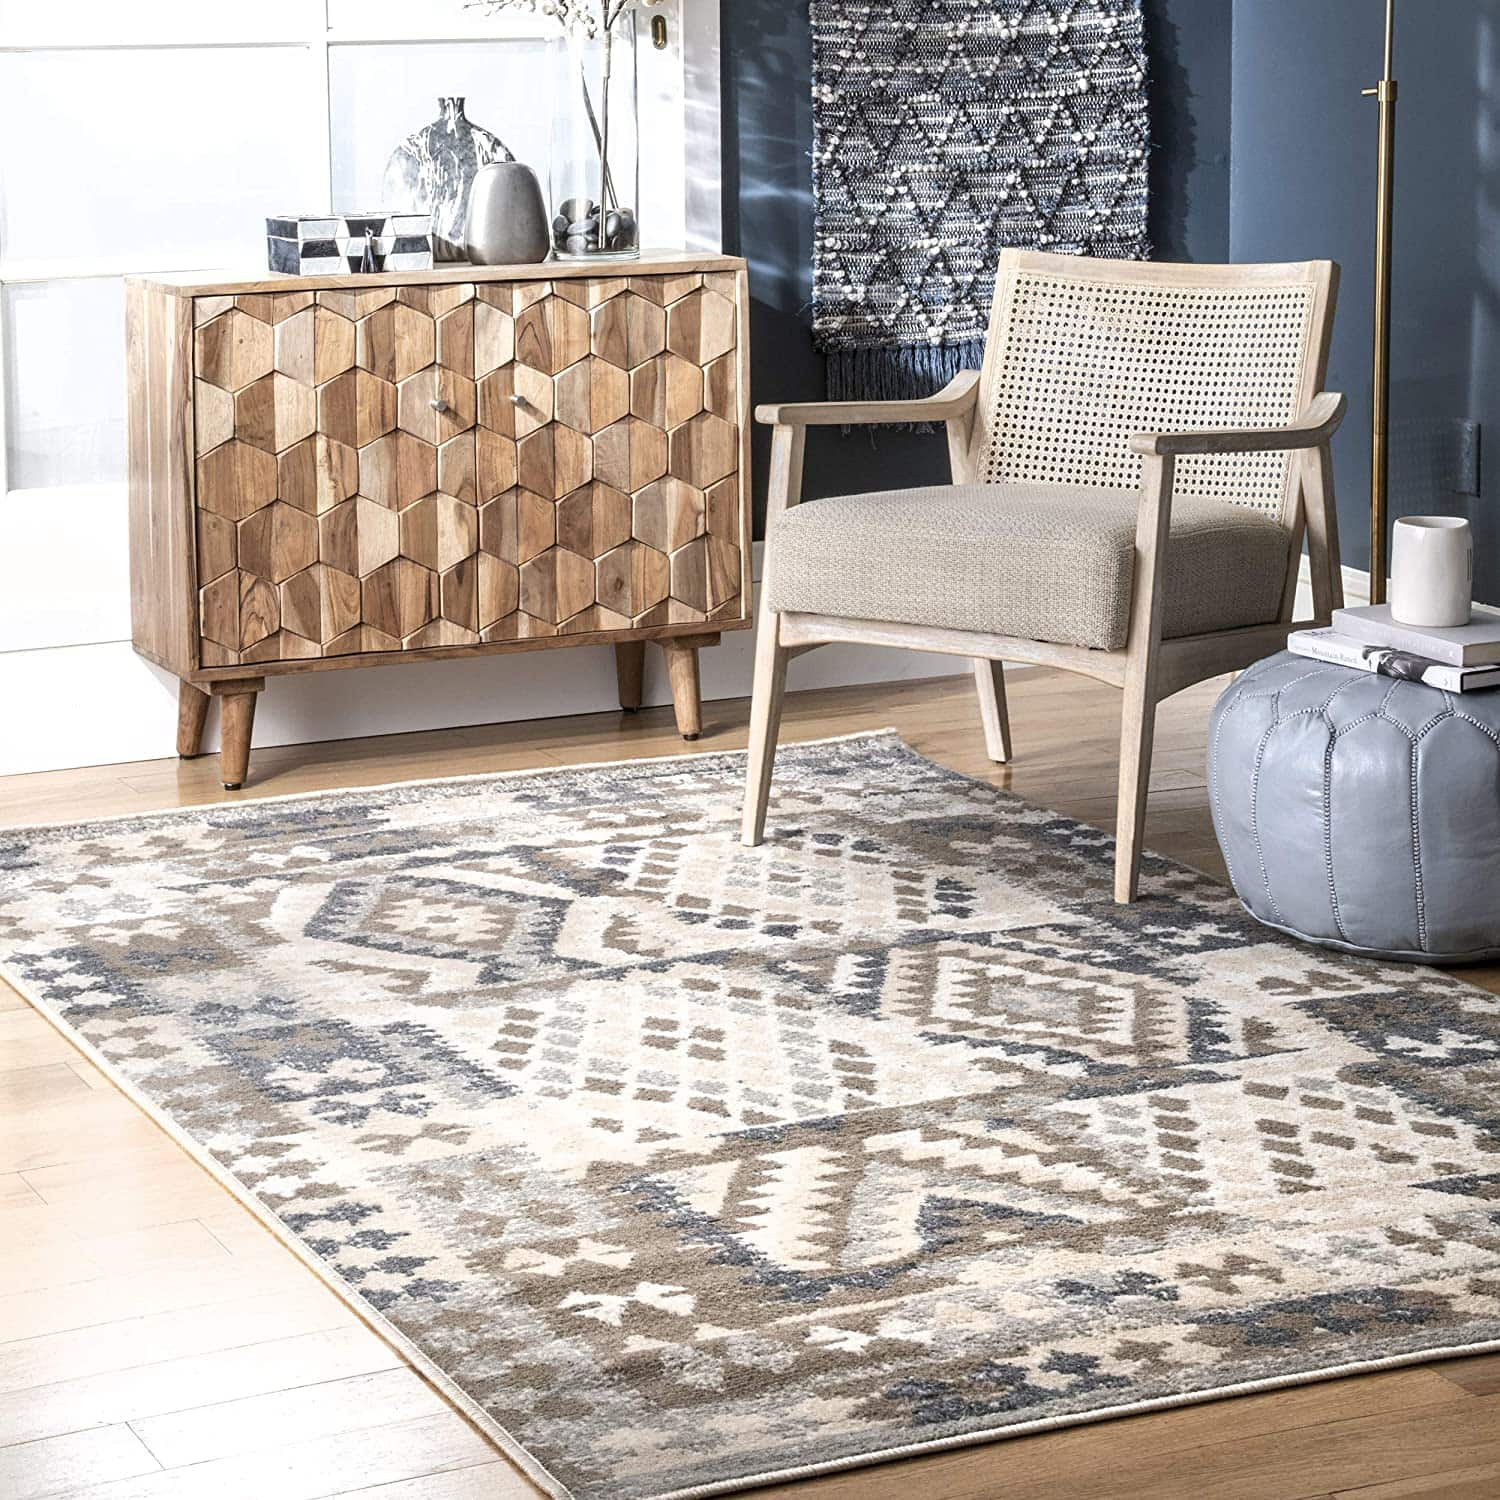 5' x 8' nuLOOM Manor Modern Nordic Area Rug $40.40 + Free Shipping